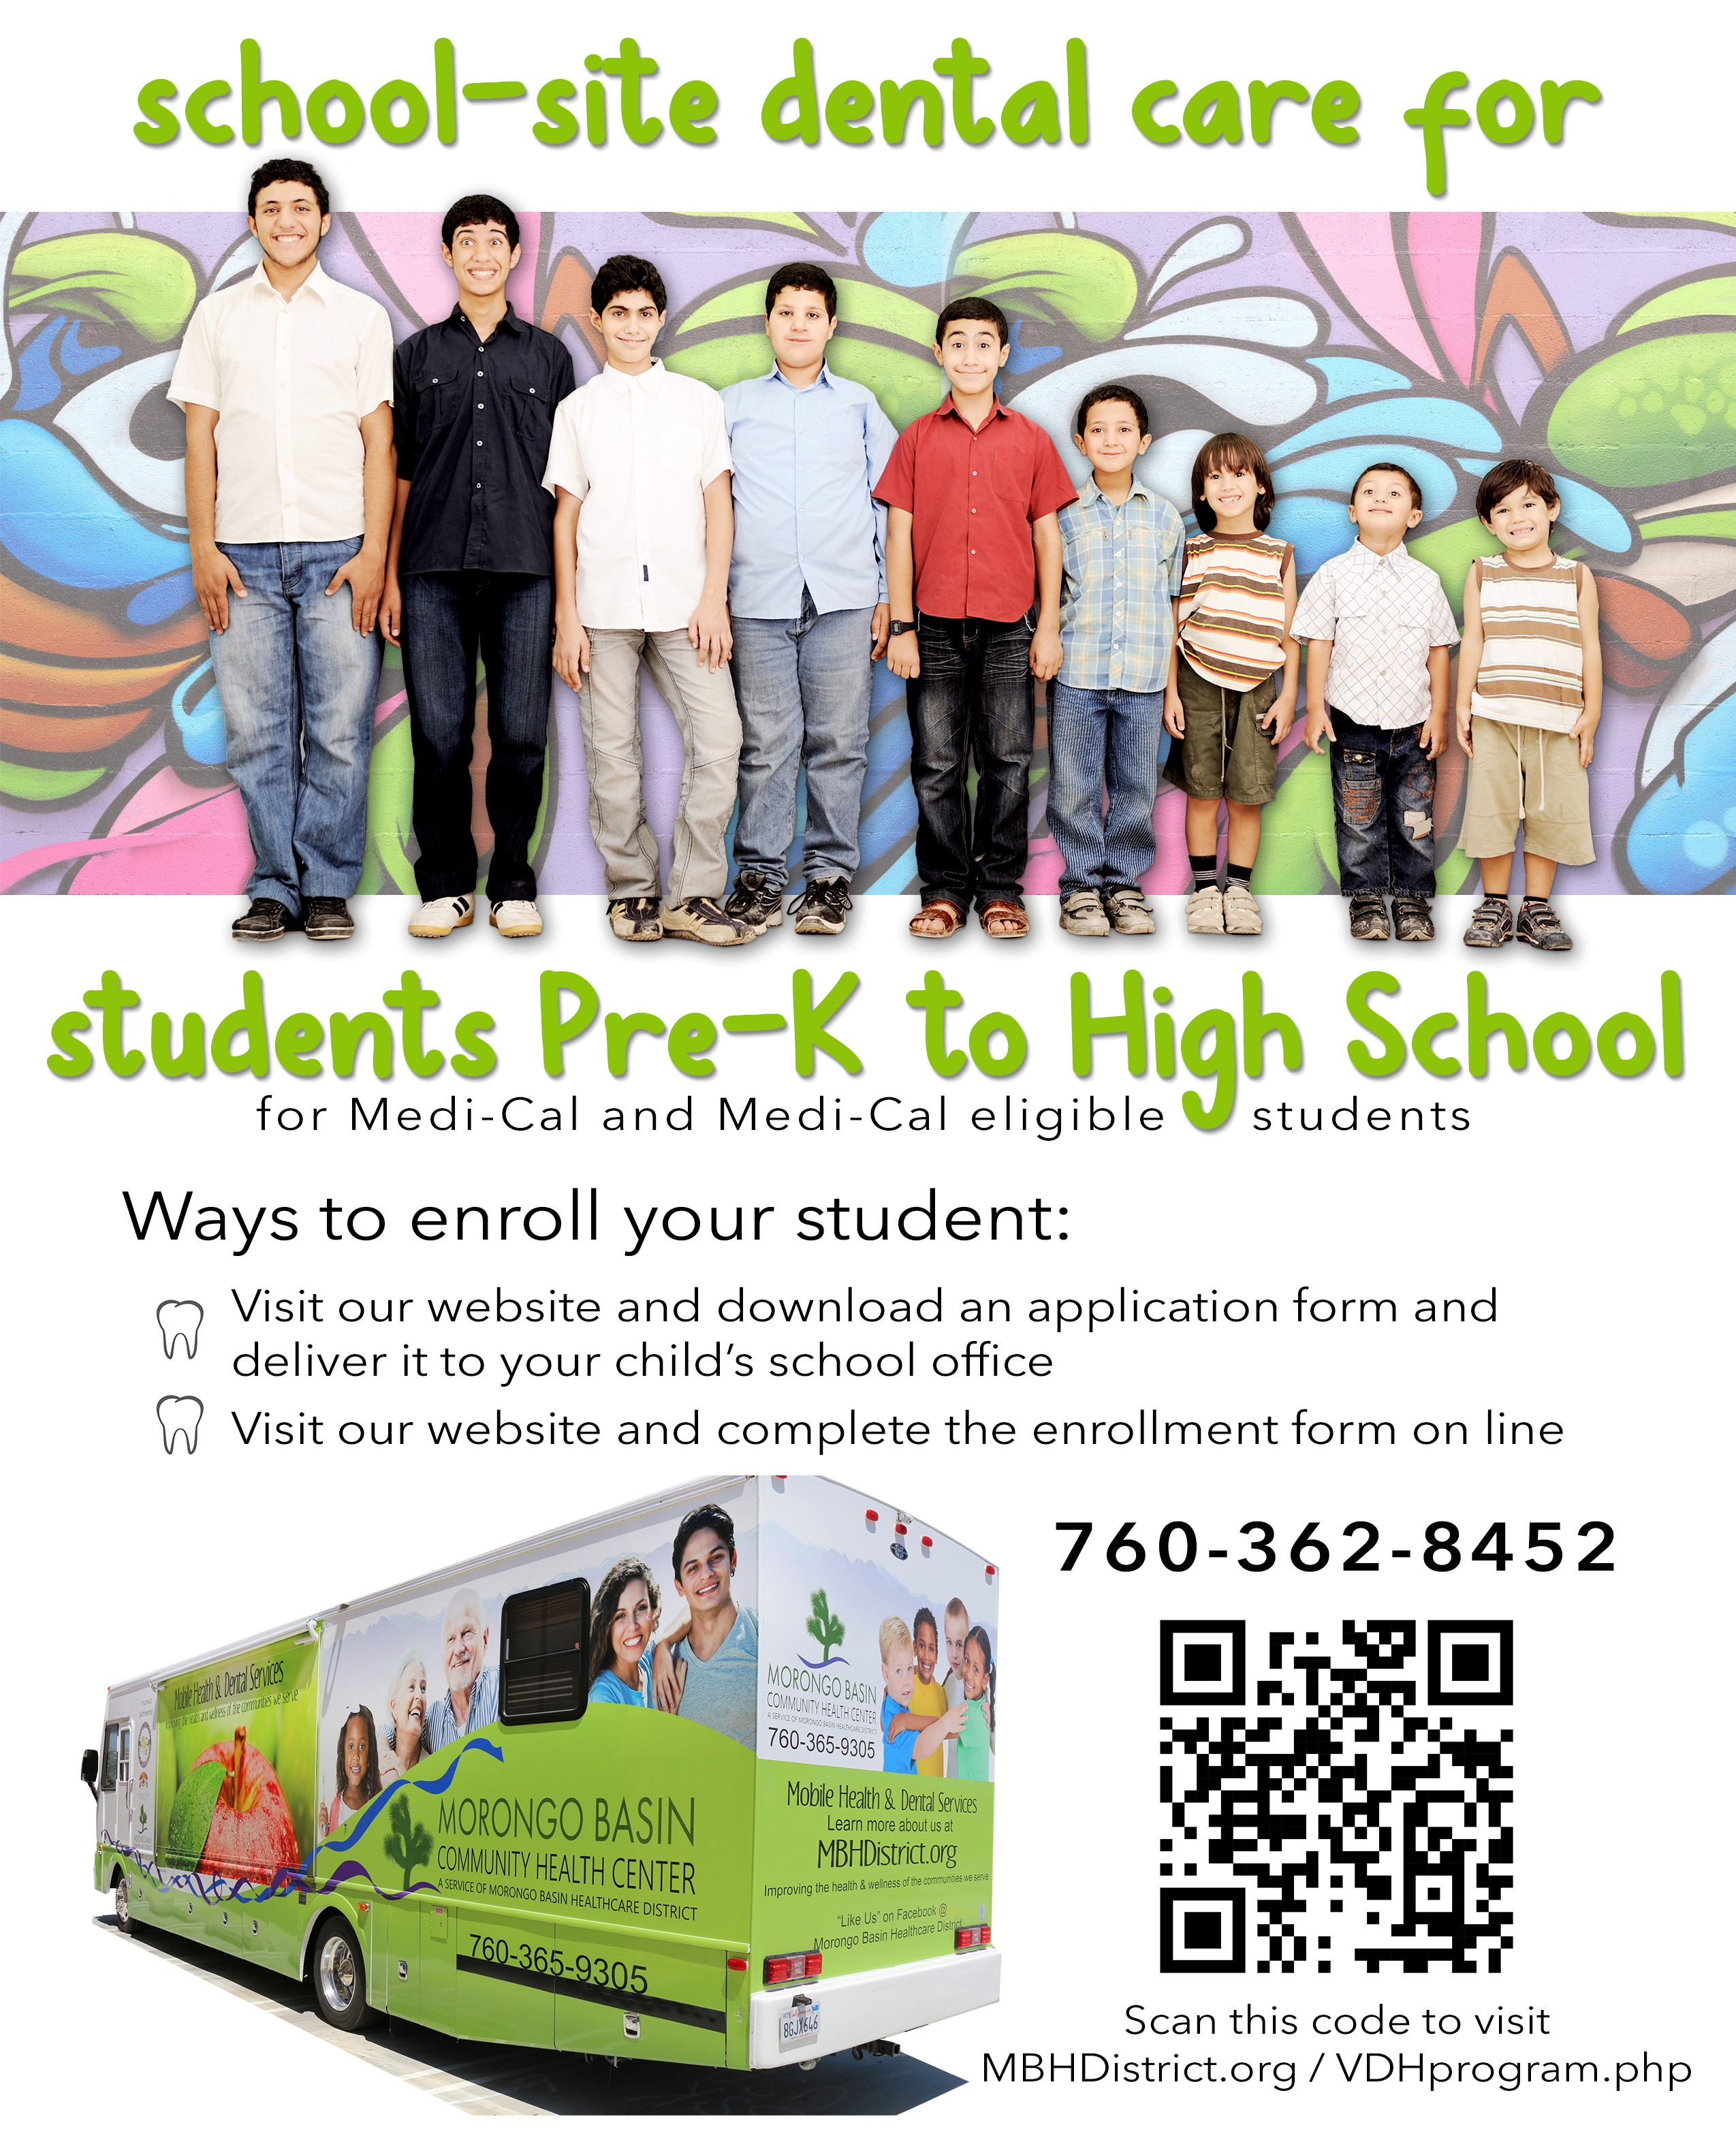 School-Site Dental Care for Medi-Cal eligible students. Click here to enroll!